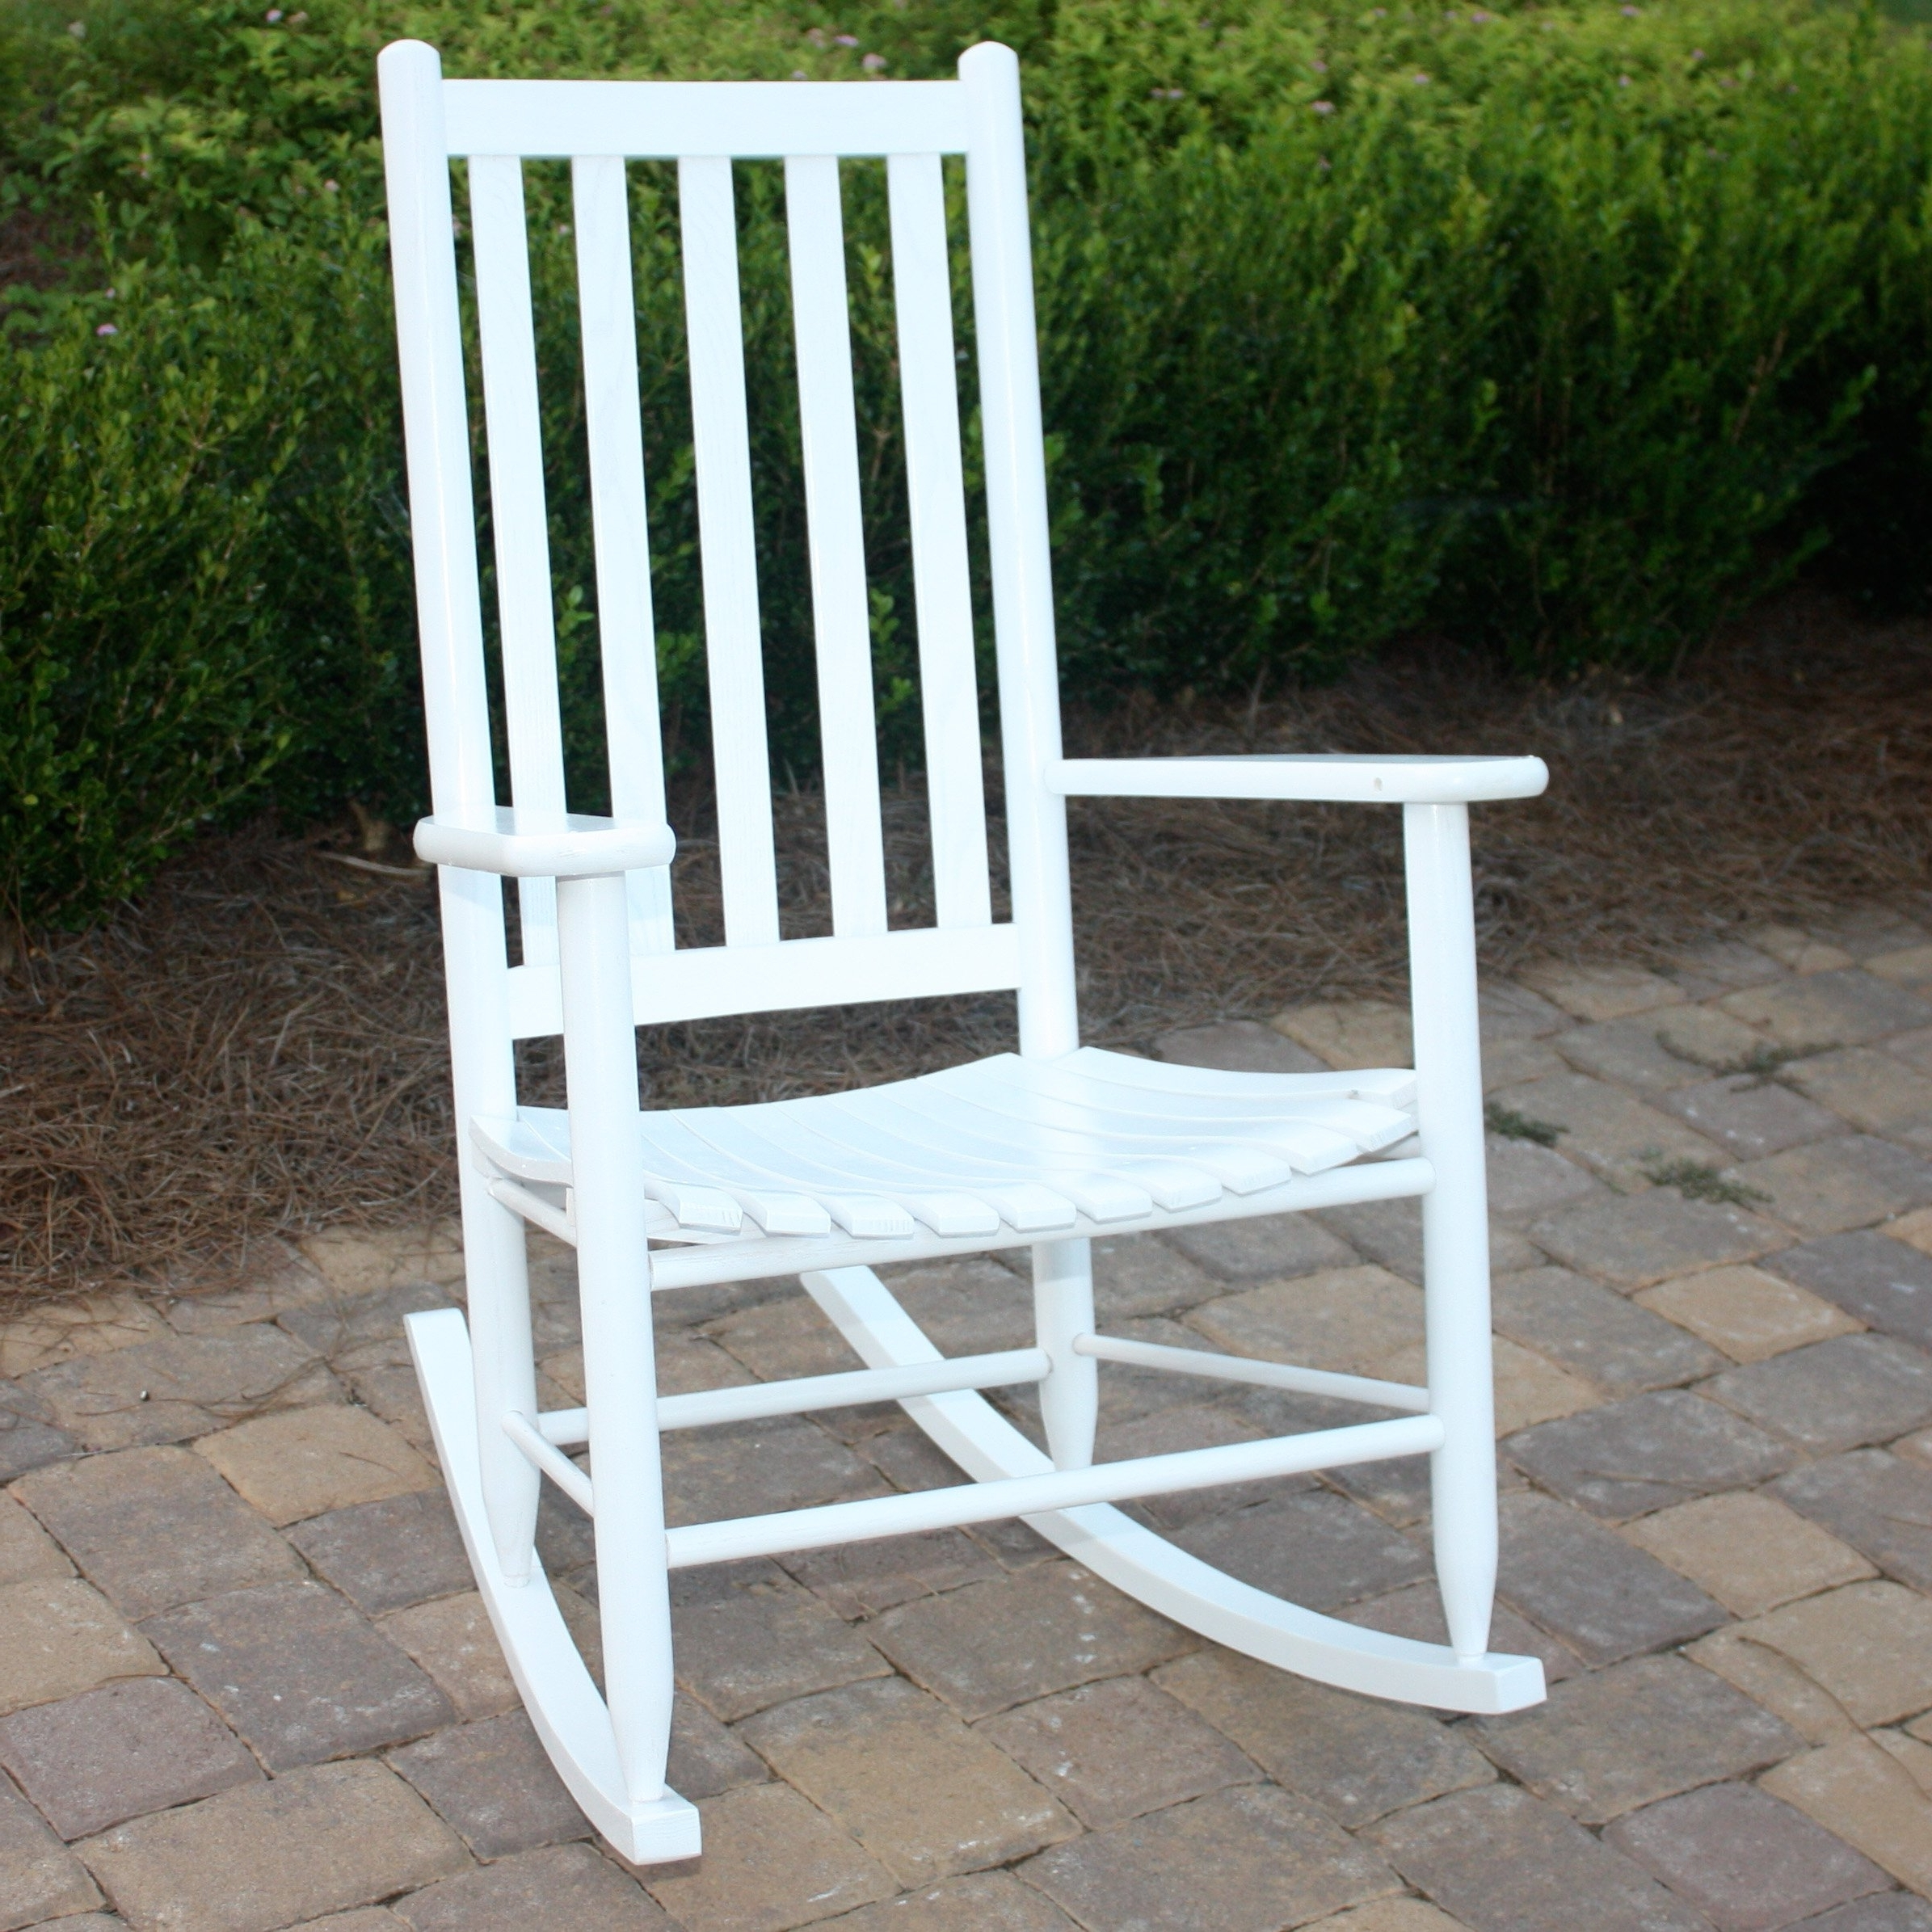 Furniture: Inspiring Outdoor Rocking Chair For Your Porch Or Your With Most Recent Rocking Chairs For Porch (View 5 of 15)